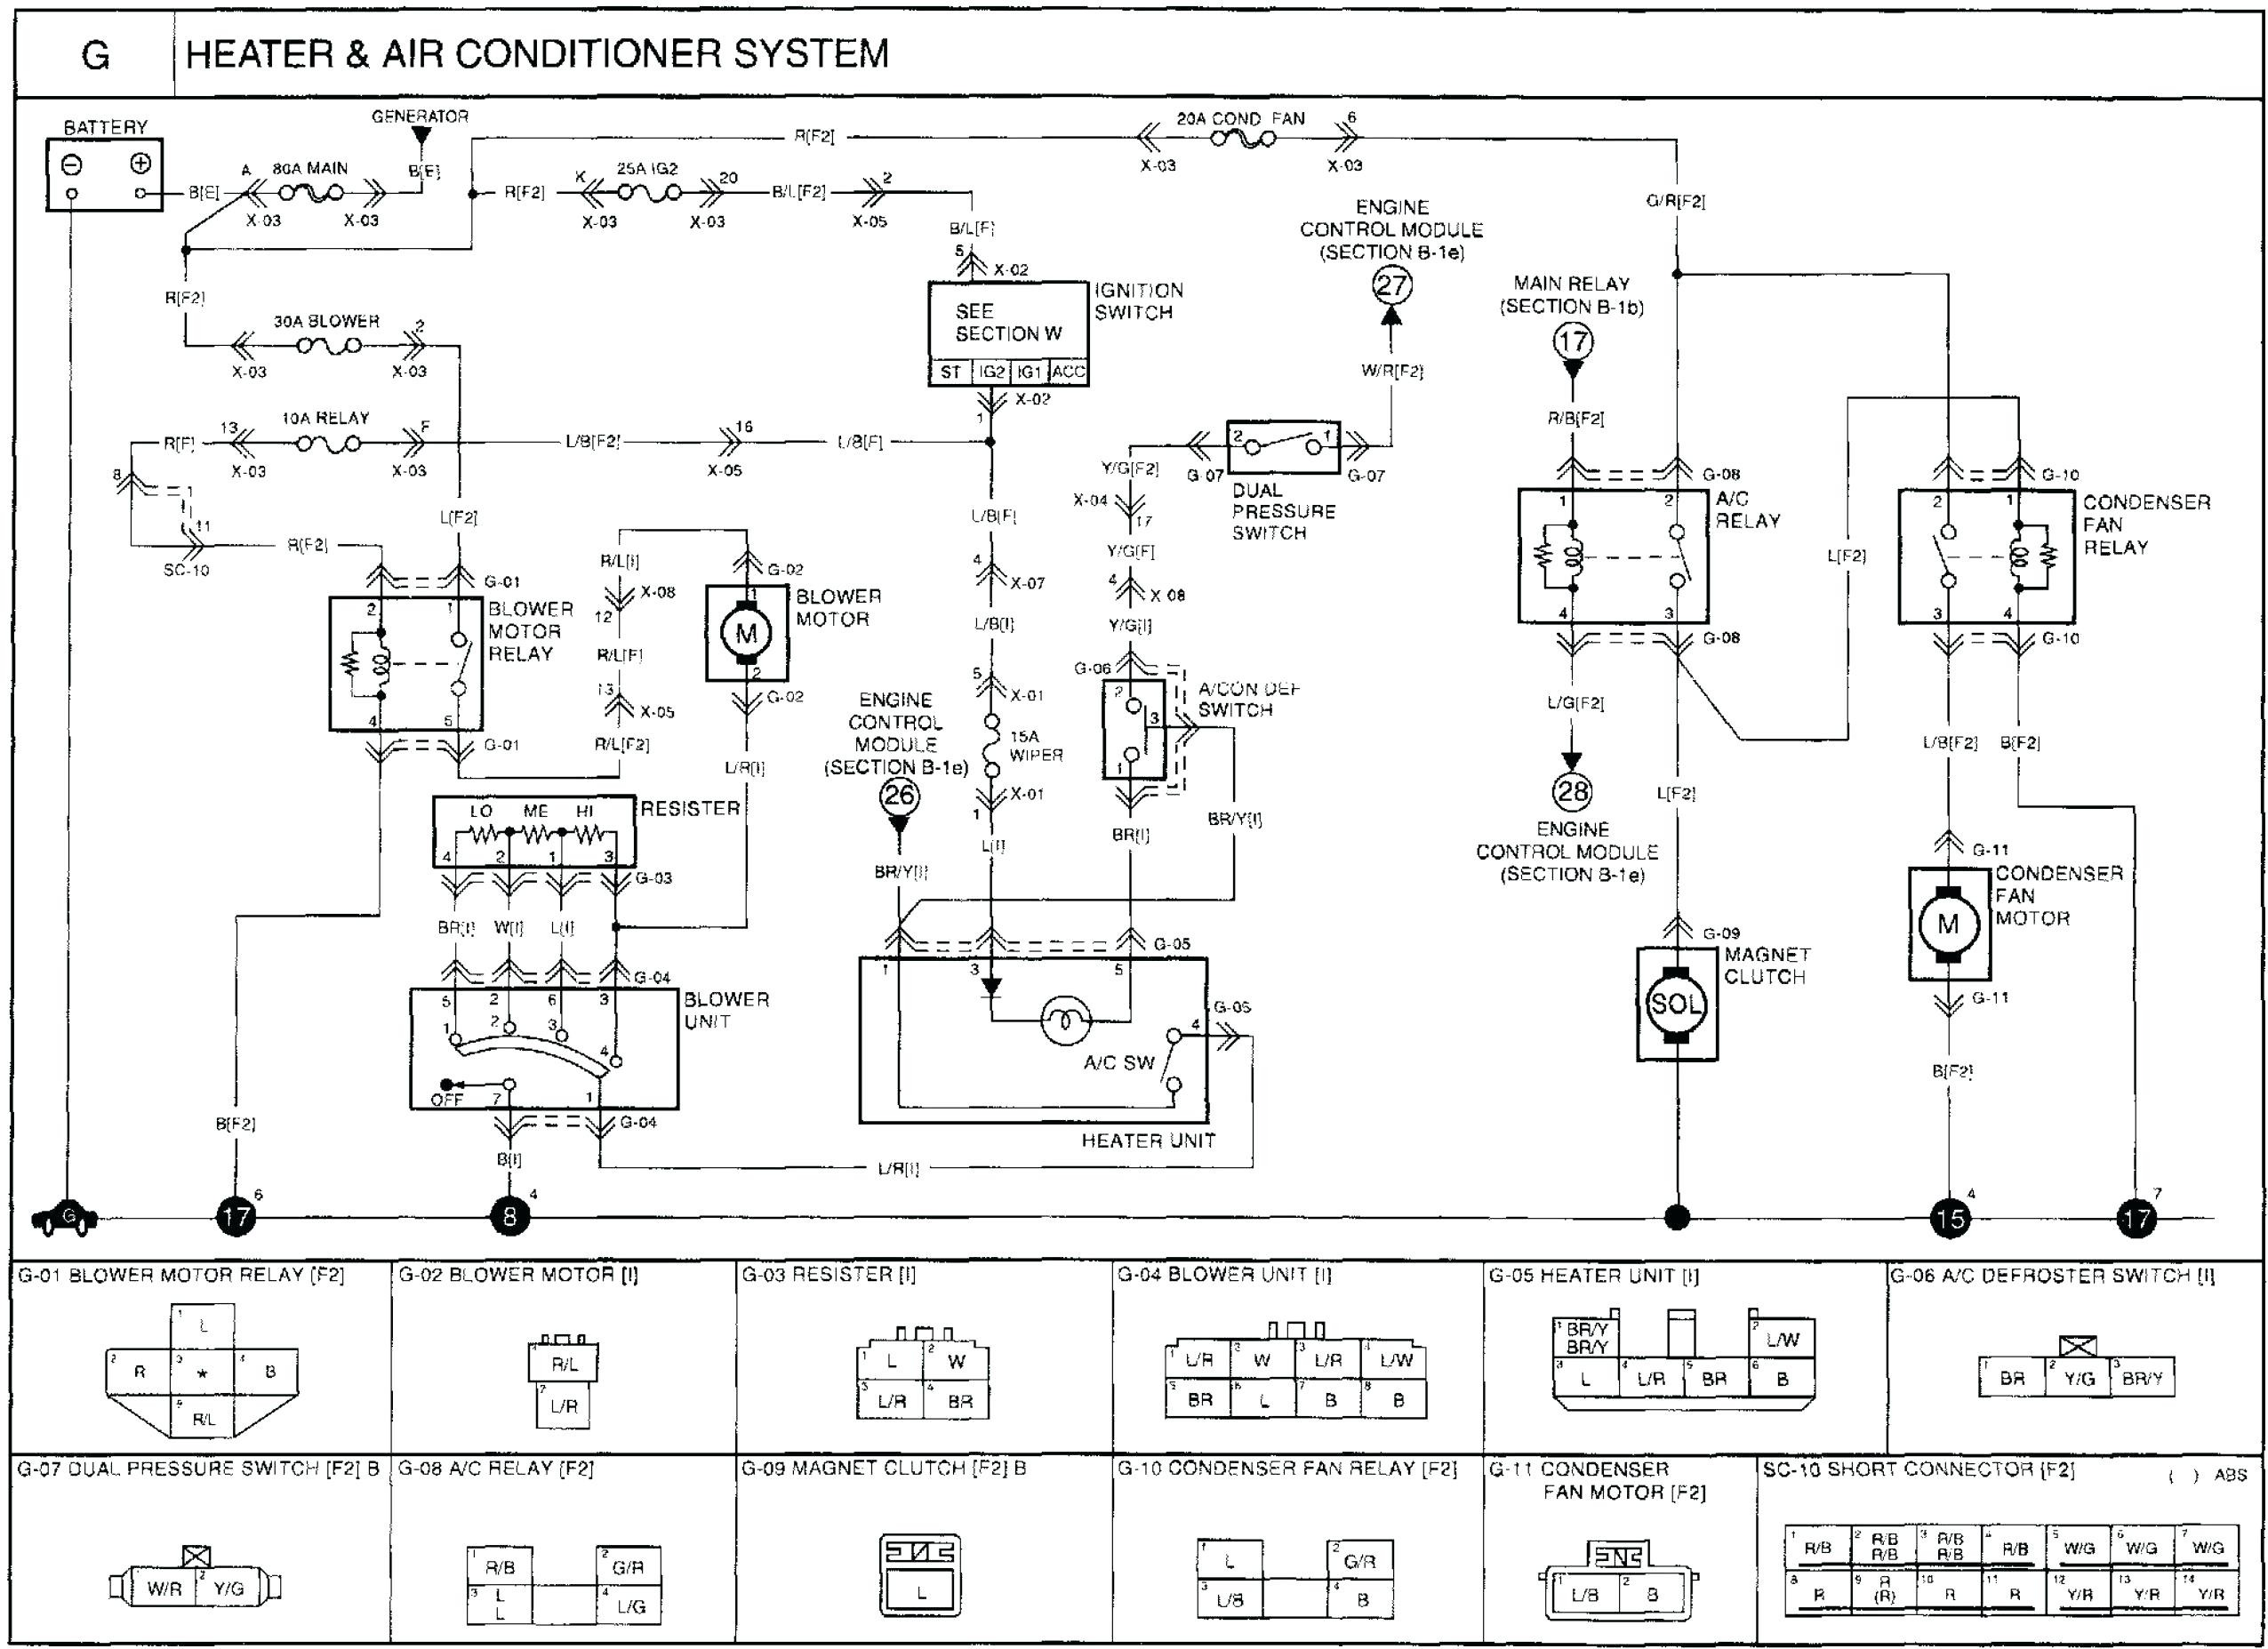 Kia Fuse Box Diagram 1998 Wiring Library 98 Sportage 2006 Optima Engine Is There A Separate Rh Detoxicrecenze